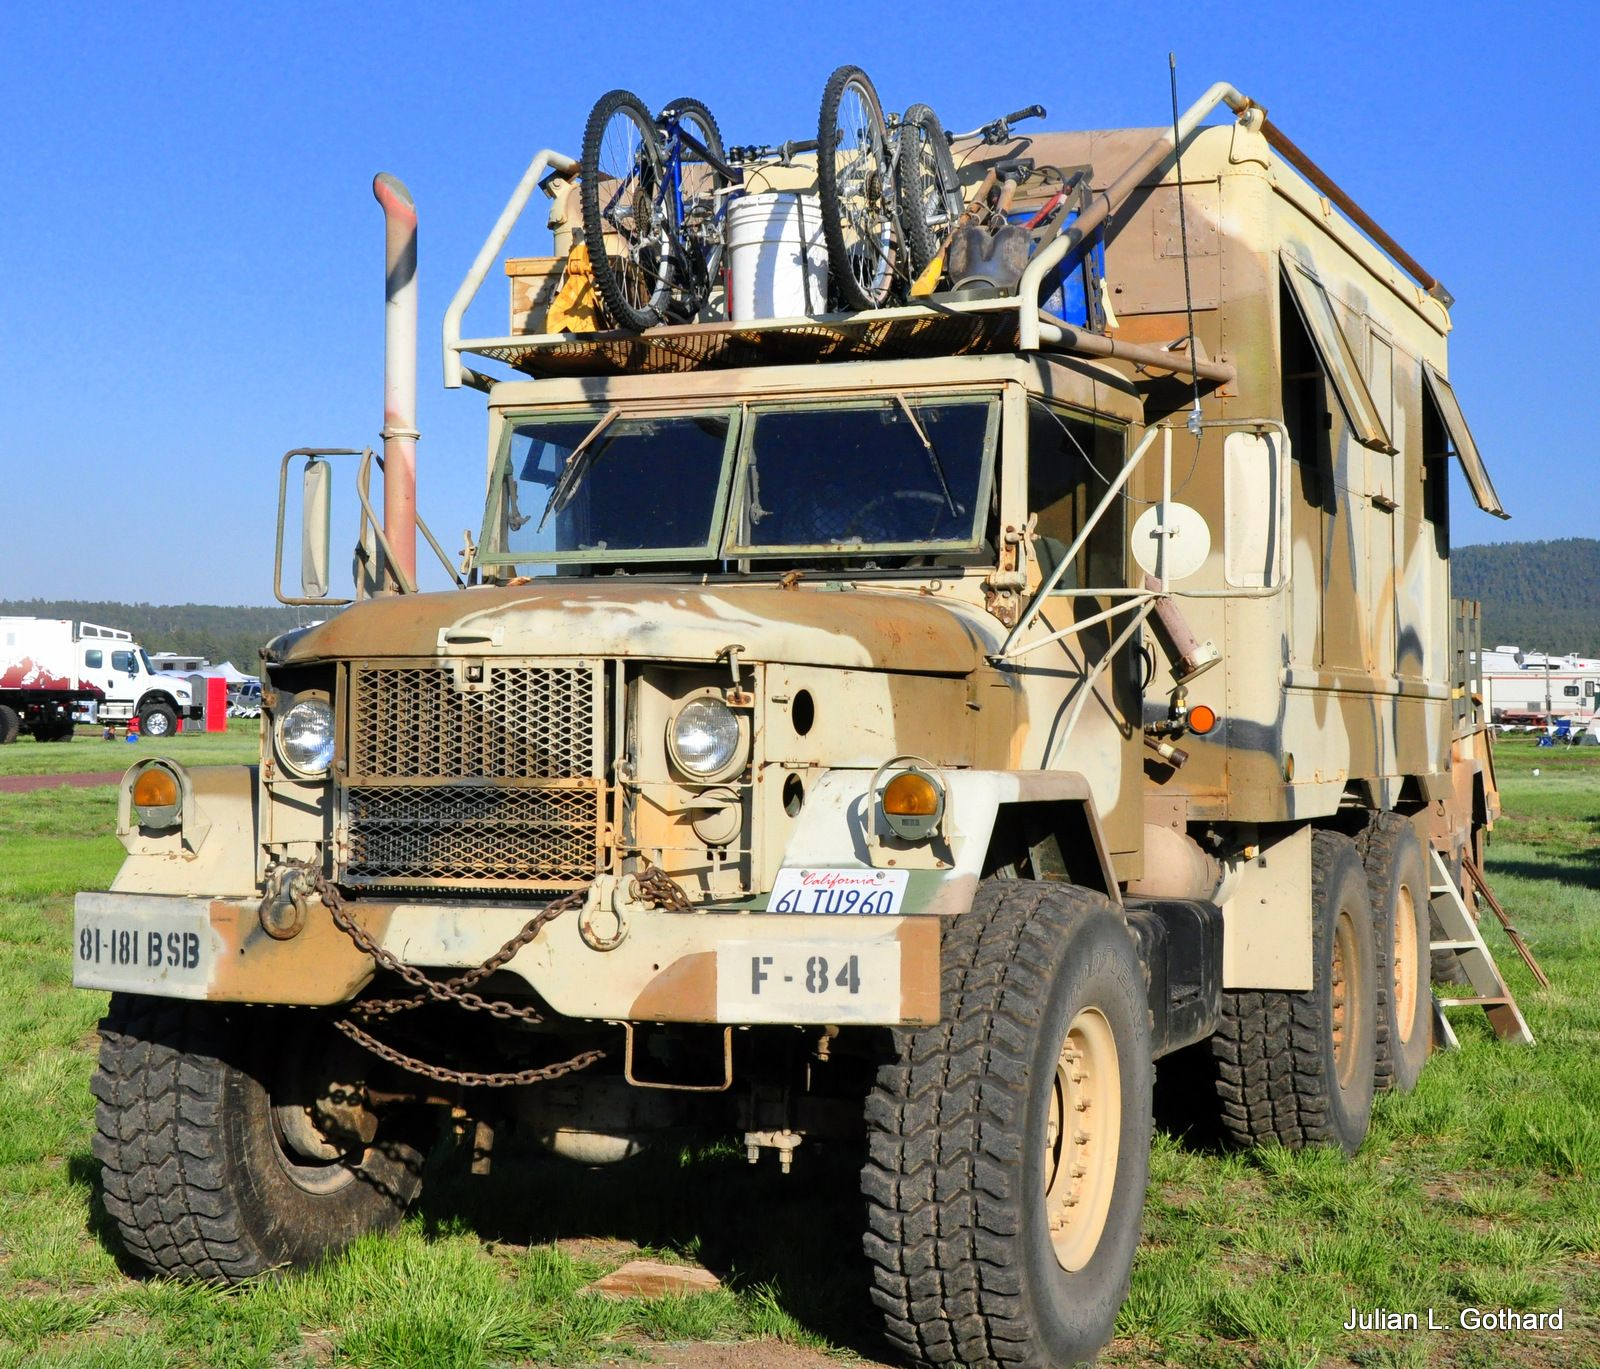 Military grade expedition vehicle at the 2012 overland expo